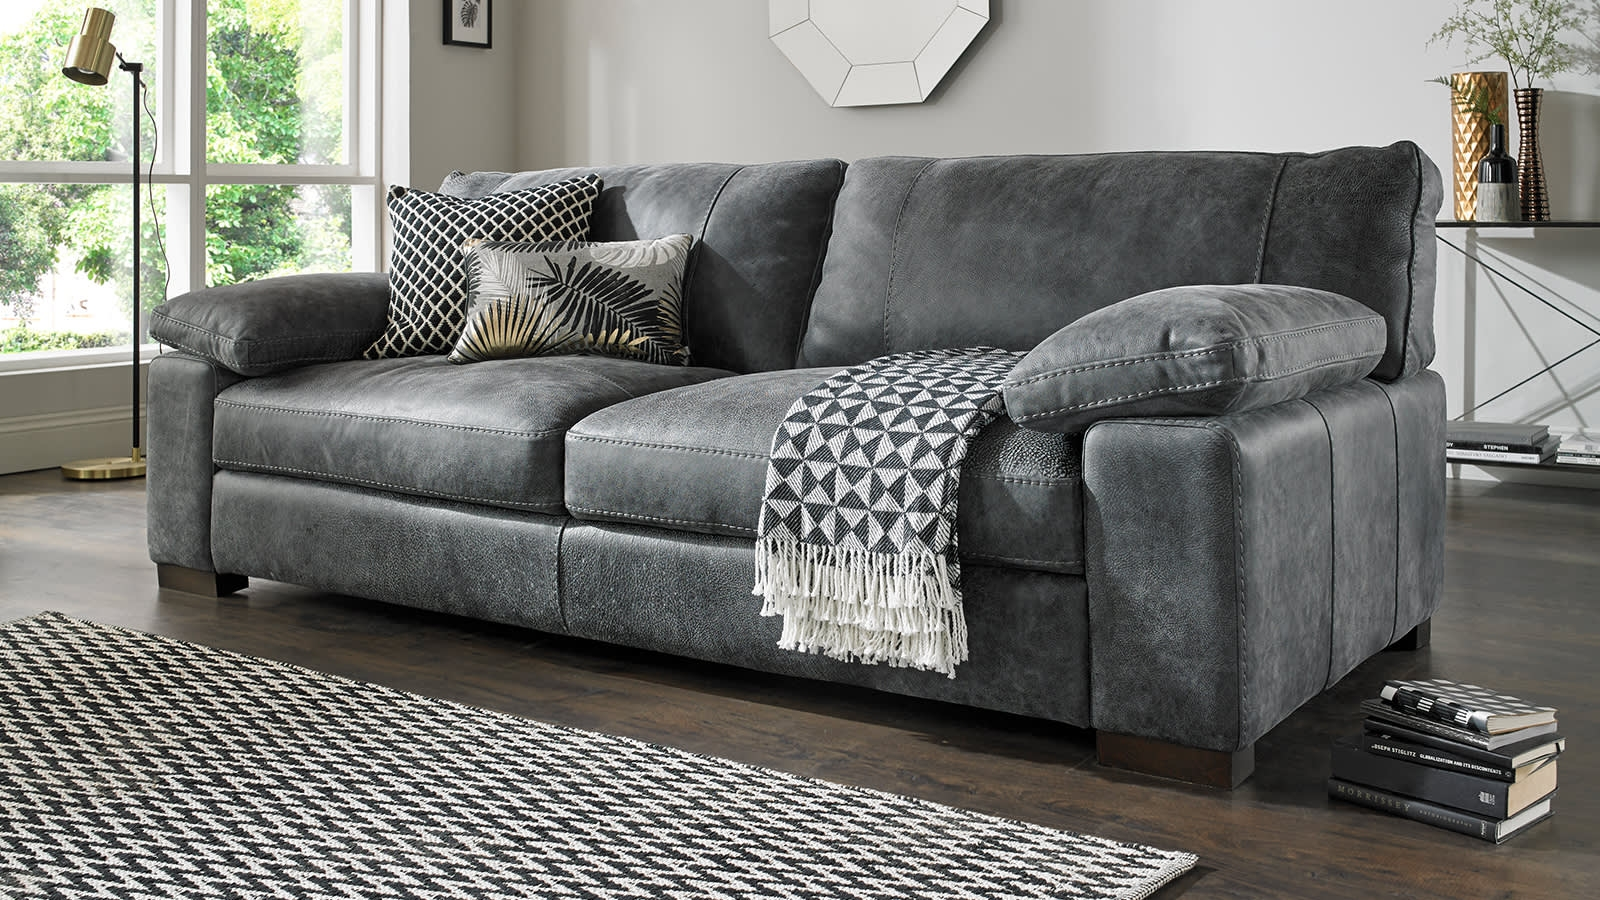 Leather Sofas Corners And Chairs Sofology with Low Leather Sofa